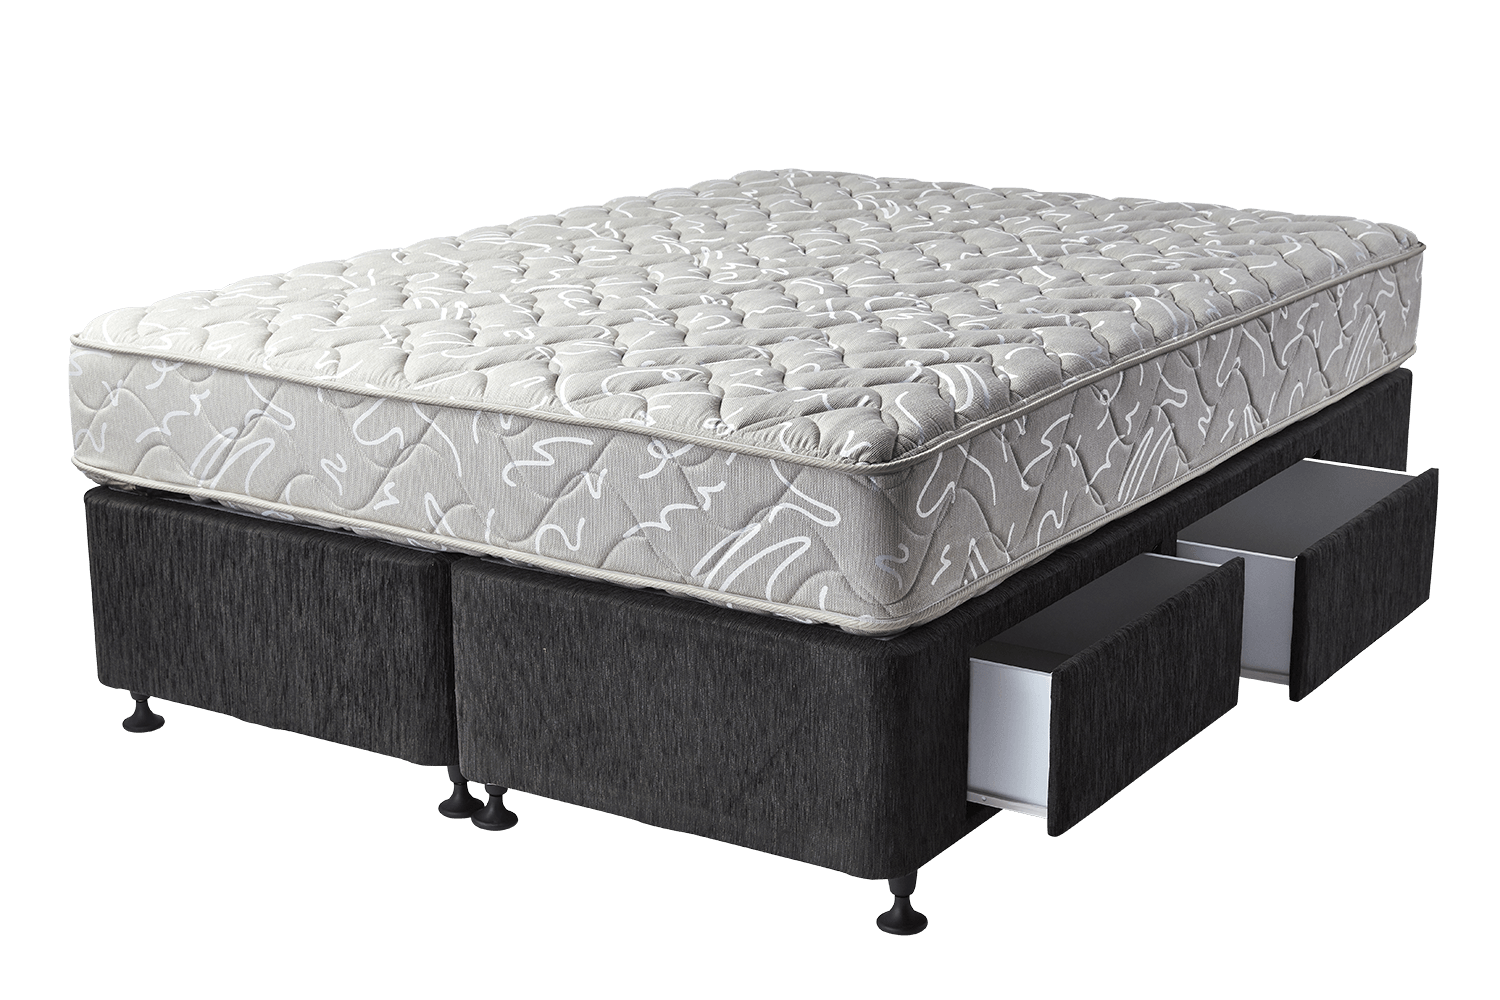 Makin mattresses ensemble base with drawers storage